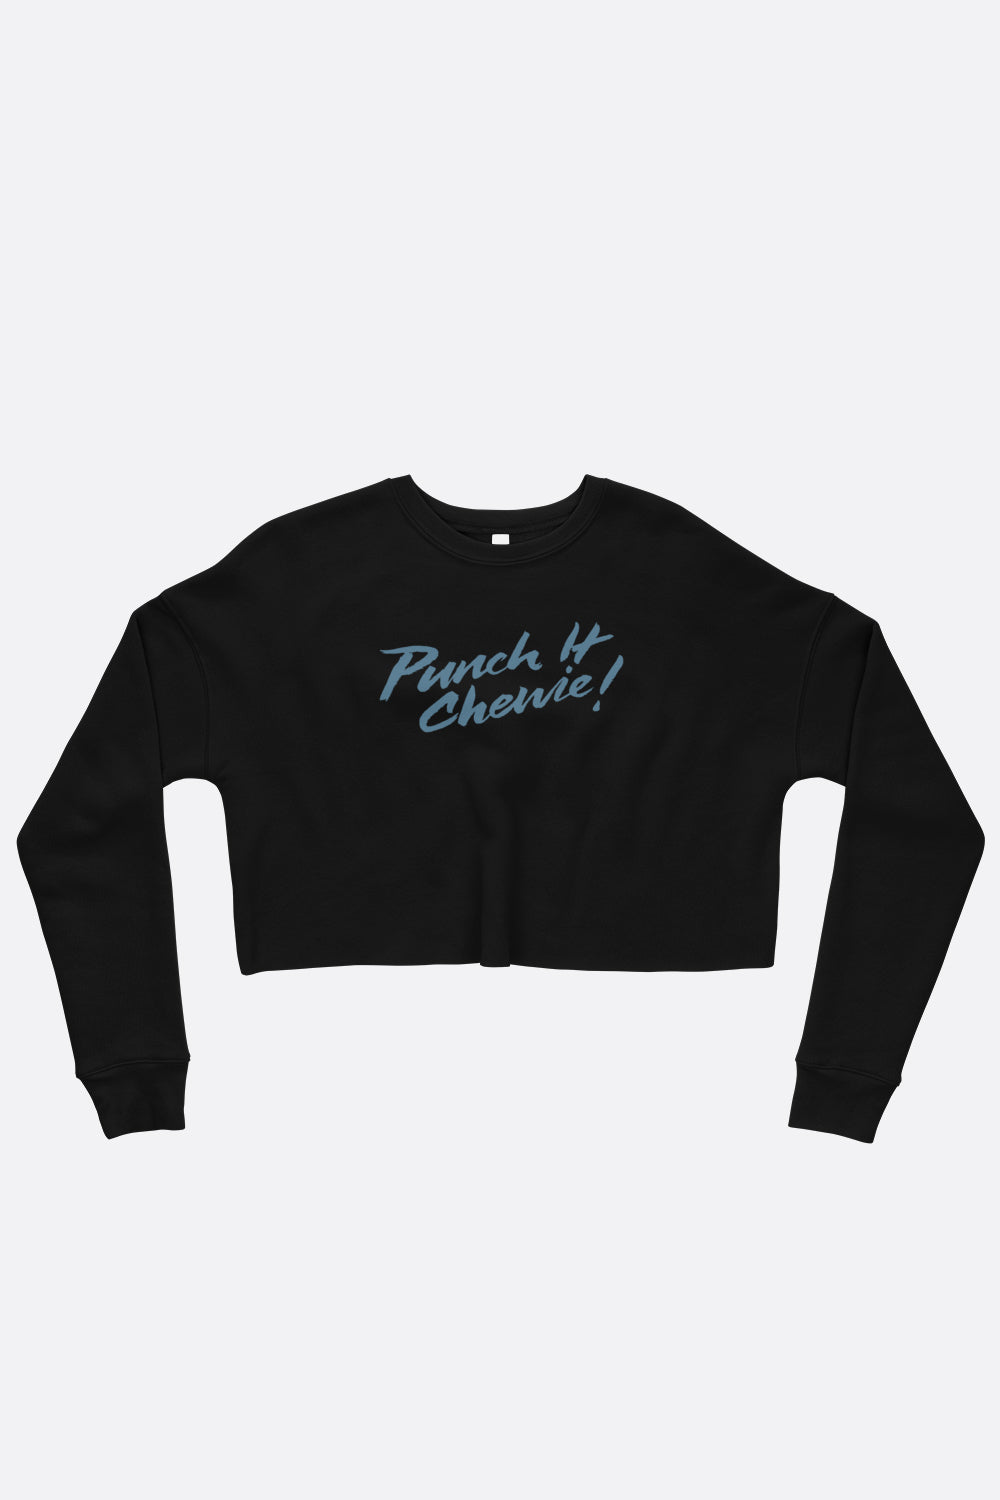 Punch It, Chewie Crop Sweatshirt